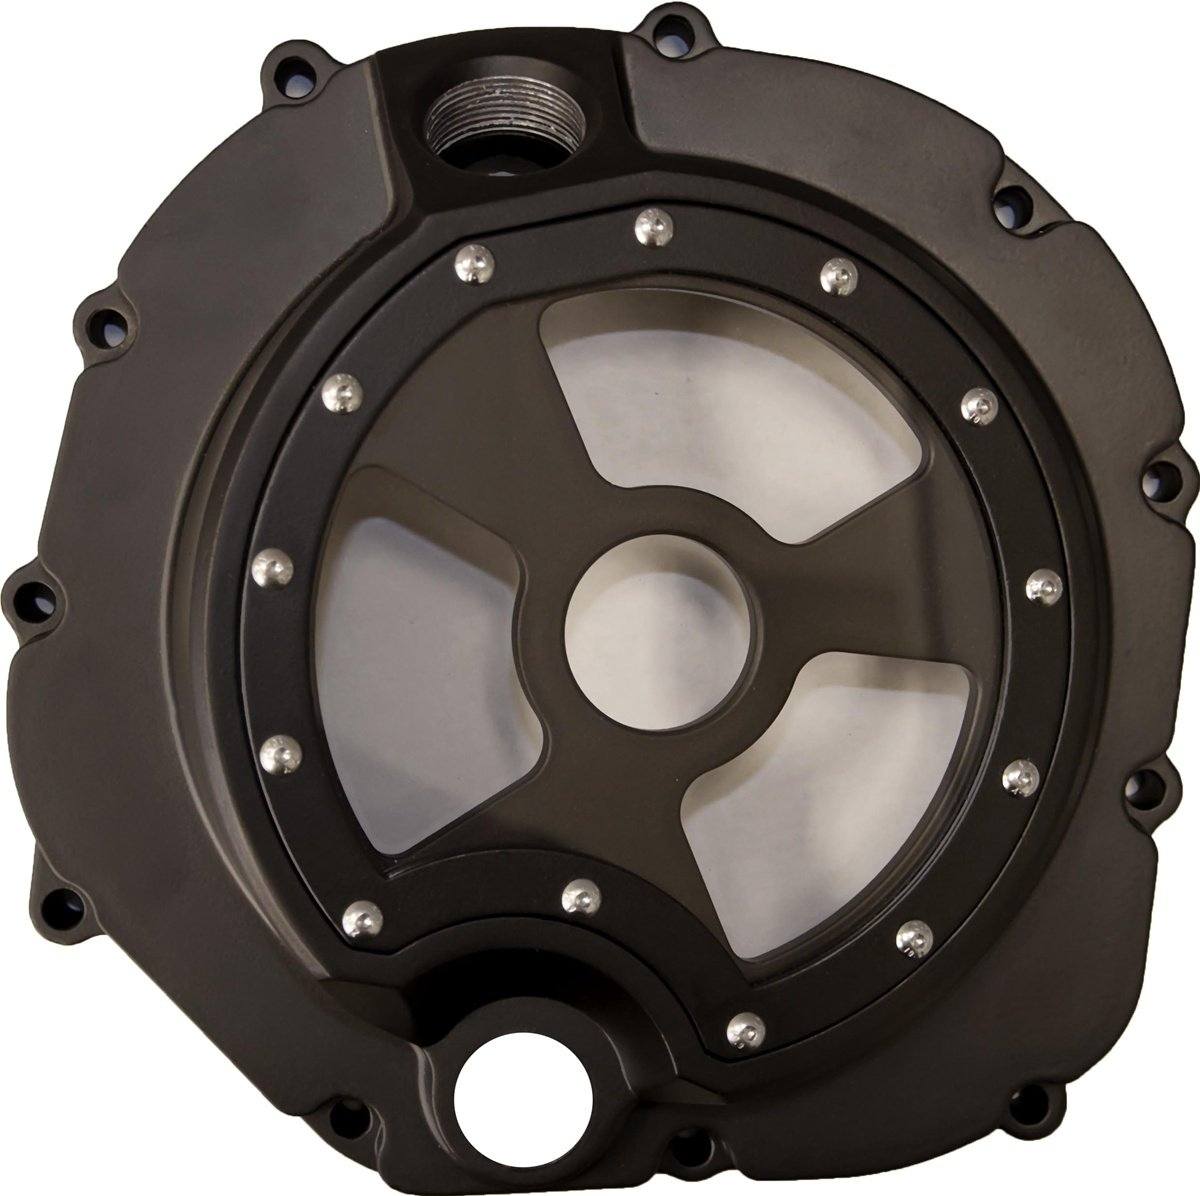 Kawasaki ZX14 (06-13) Anodized Black Clutch Cover #cck201b)